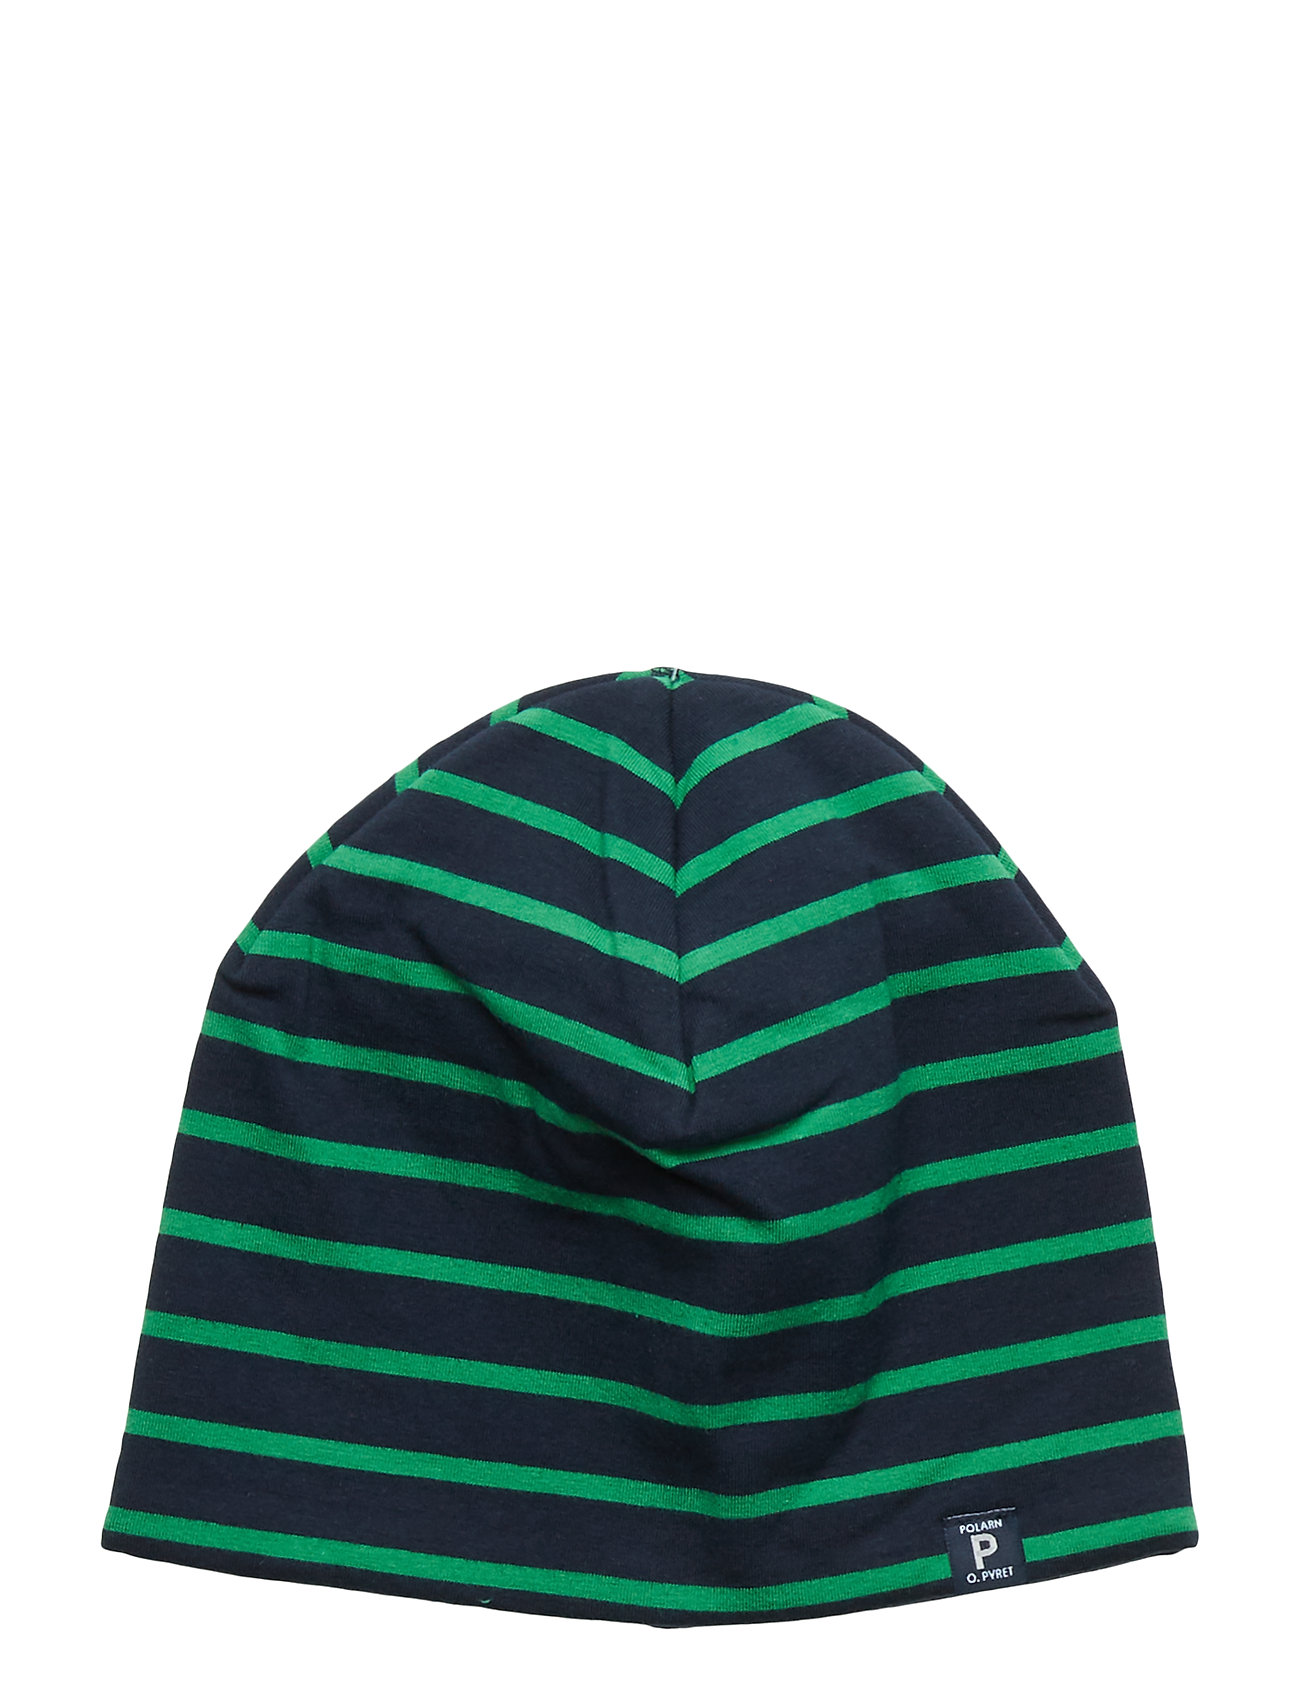 Polarn O. Pyret Cap PO.P Striped PreSchool - DARK SAPPHIRE